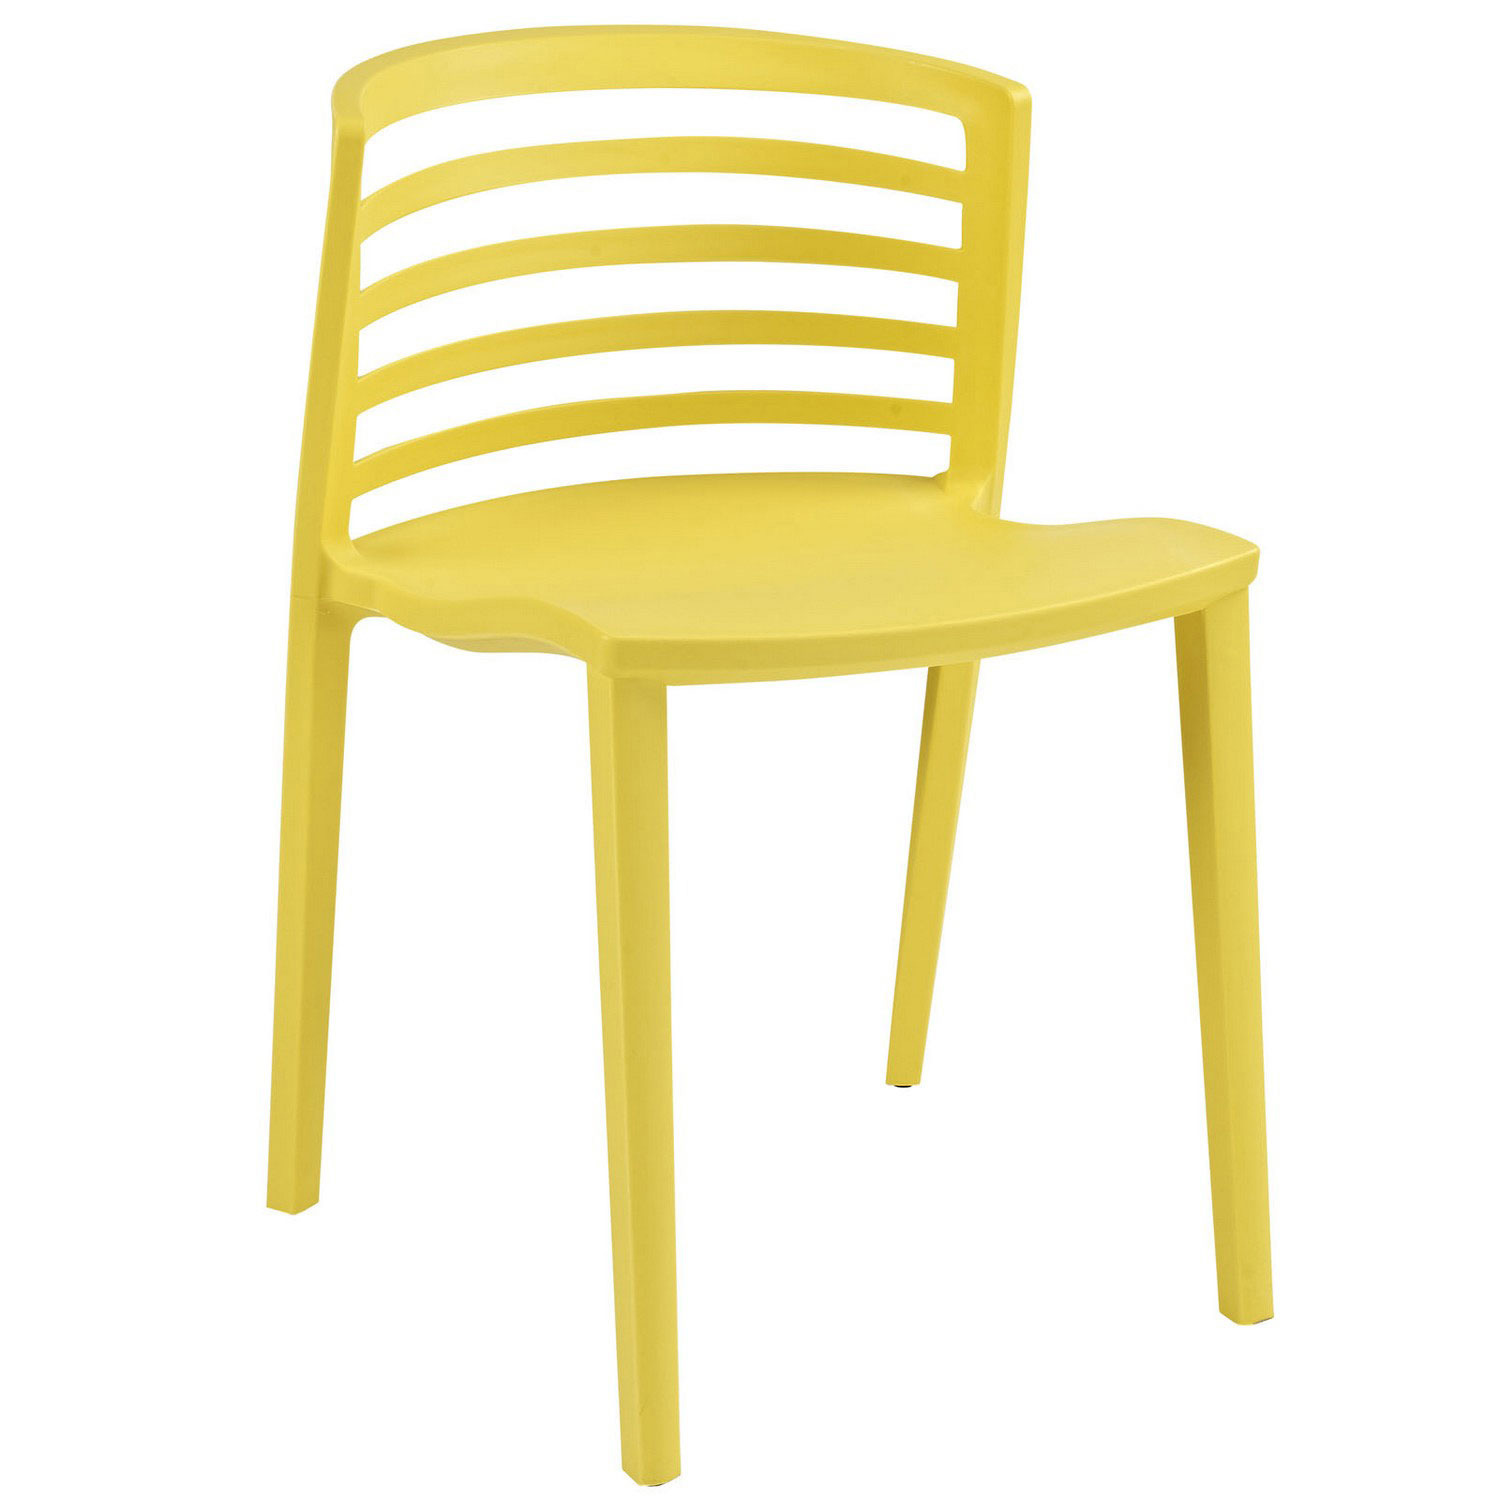 Modway Curvy Dining Side Chair - Yellow